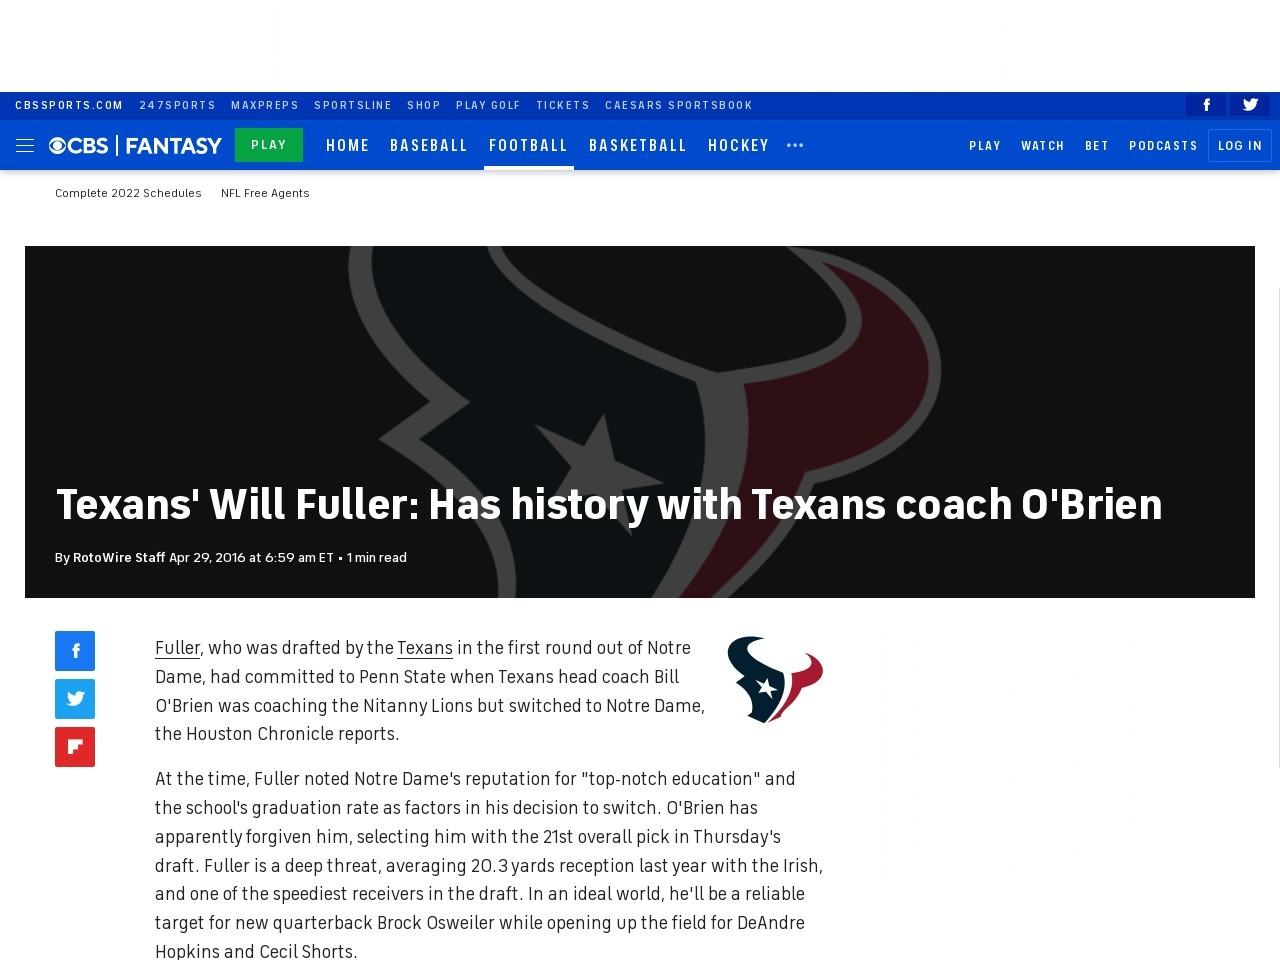 Texans' Will Fuller: Has history with Texans coach O'Brien